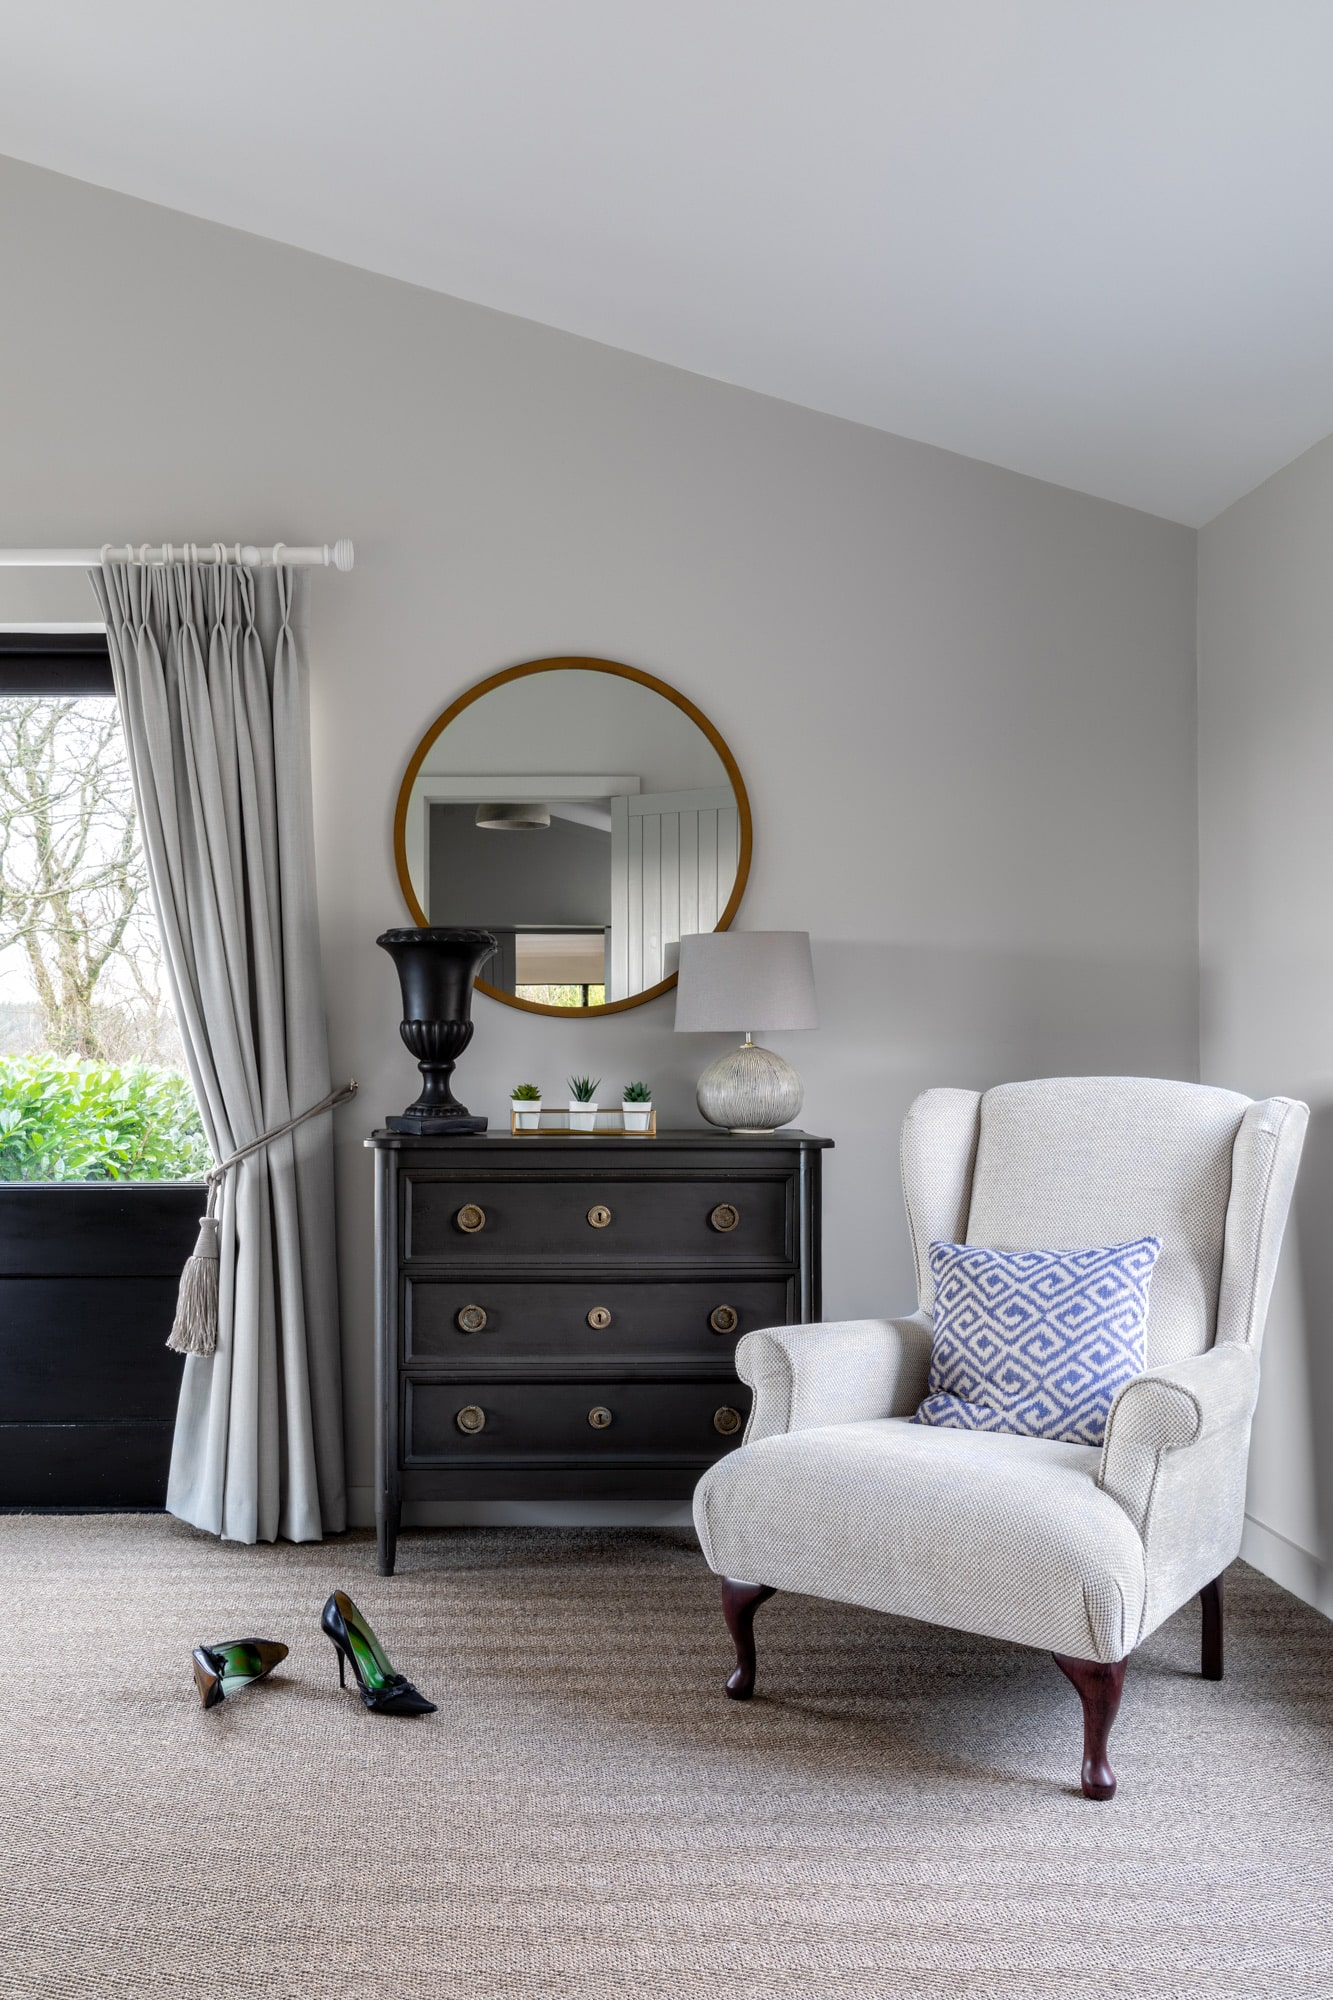 Interior photo of a bedroom: dark chest of drawers, llight beige armchair, round mirror above the chest of drawers and a glass door to a garden